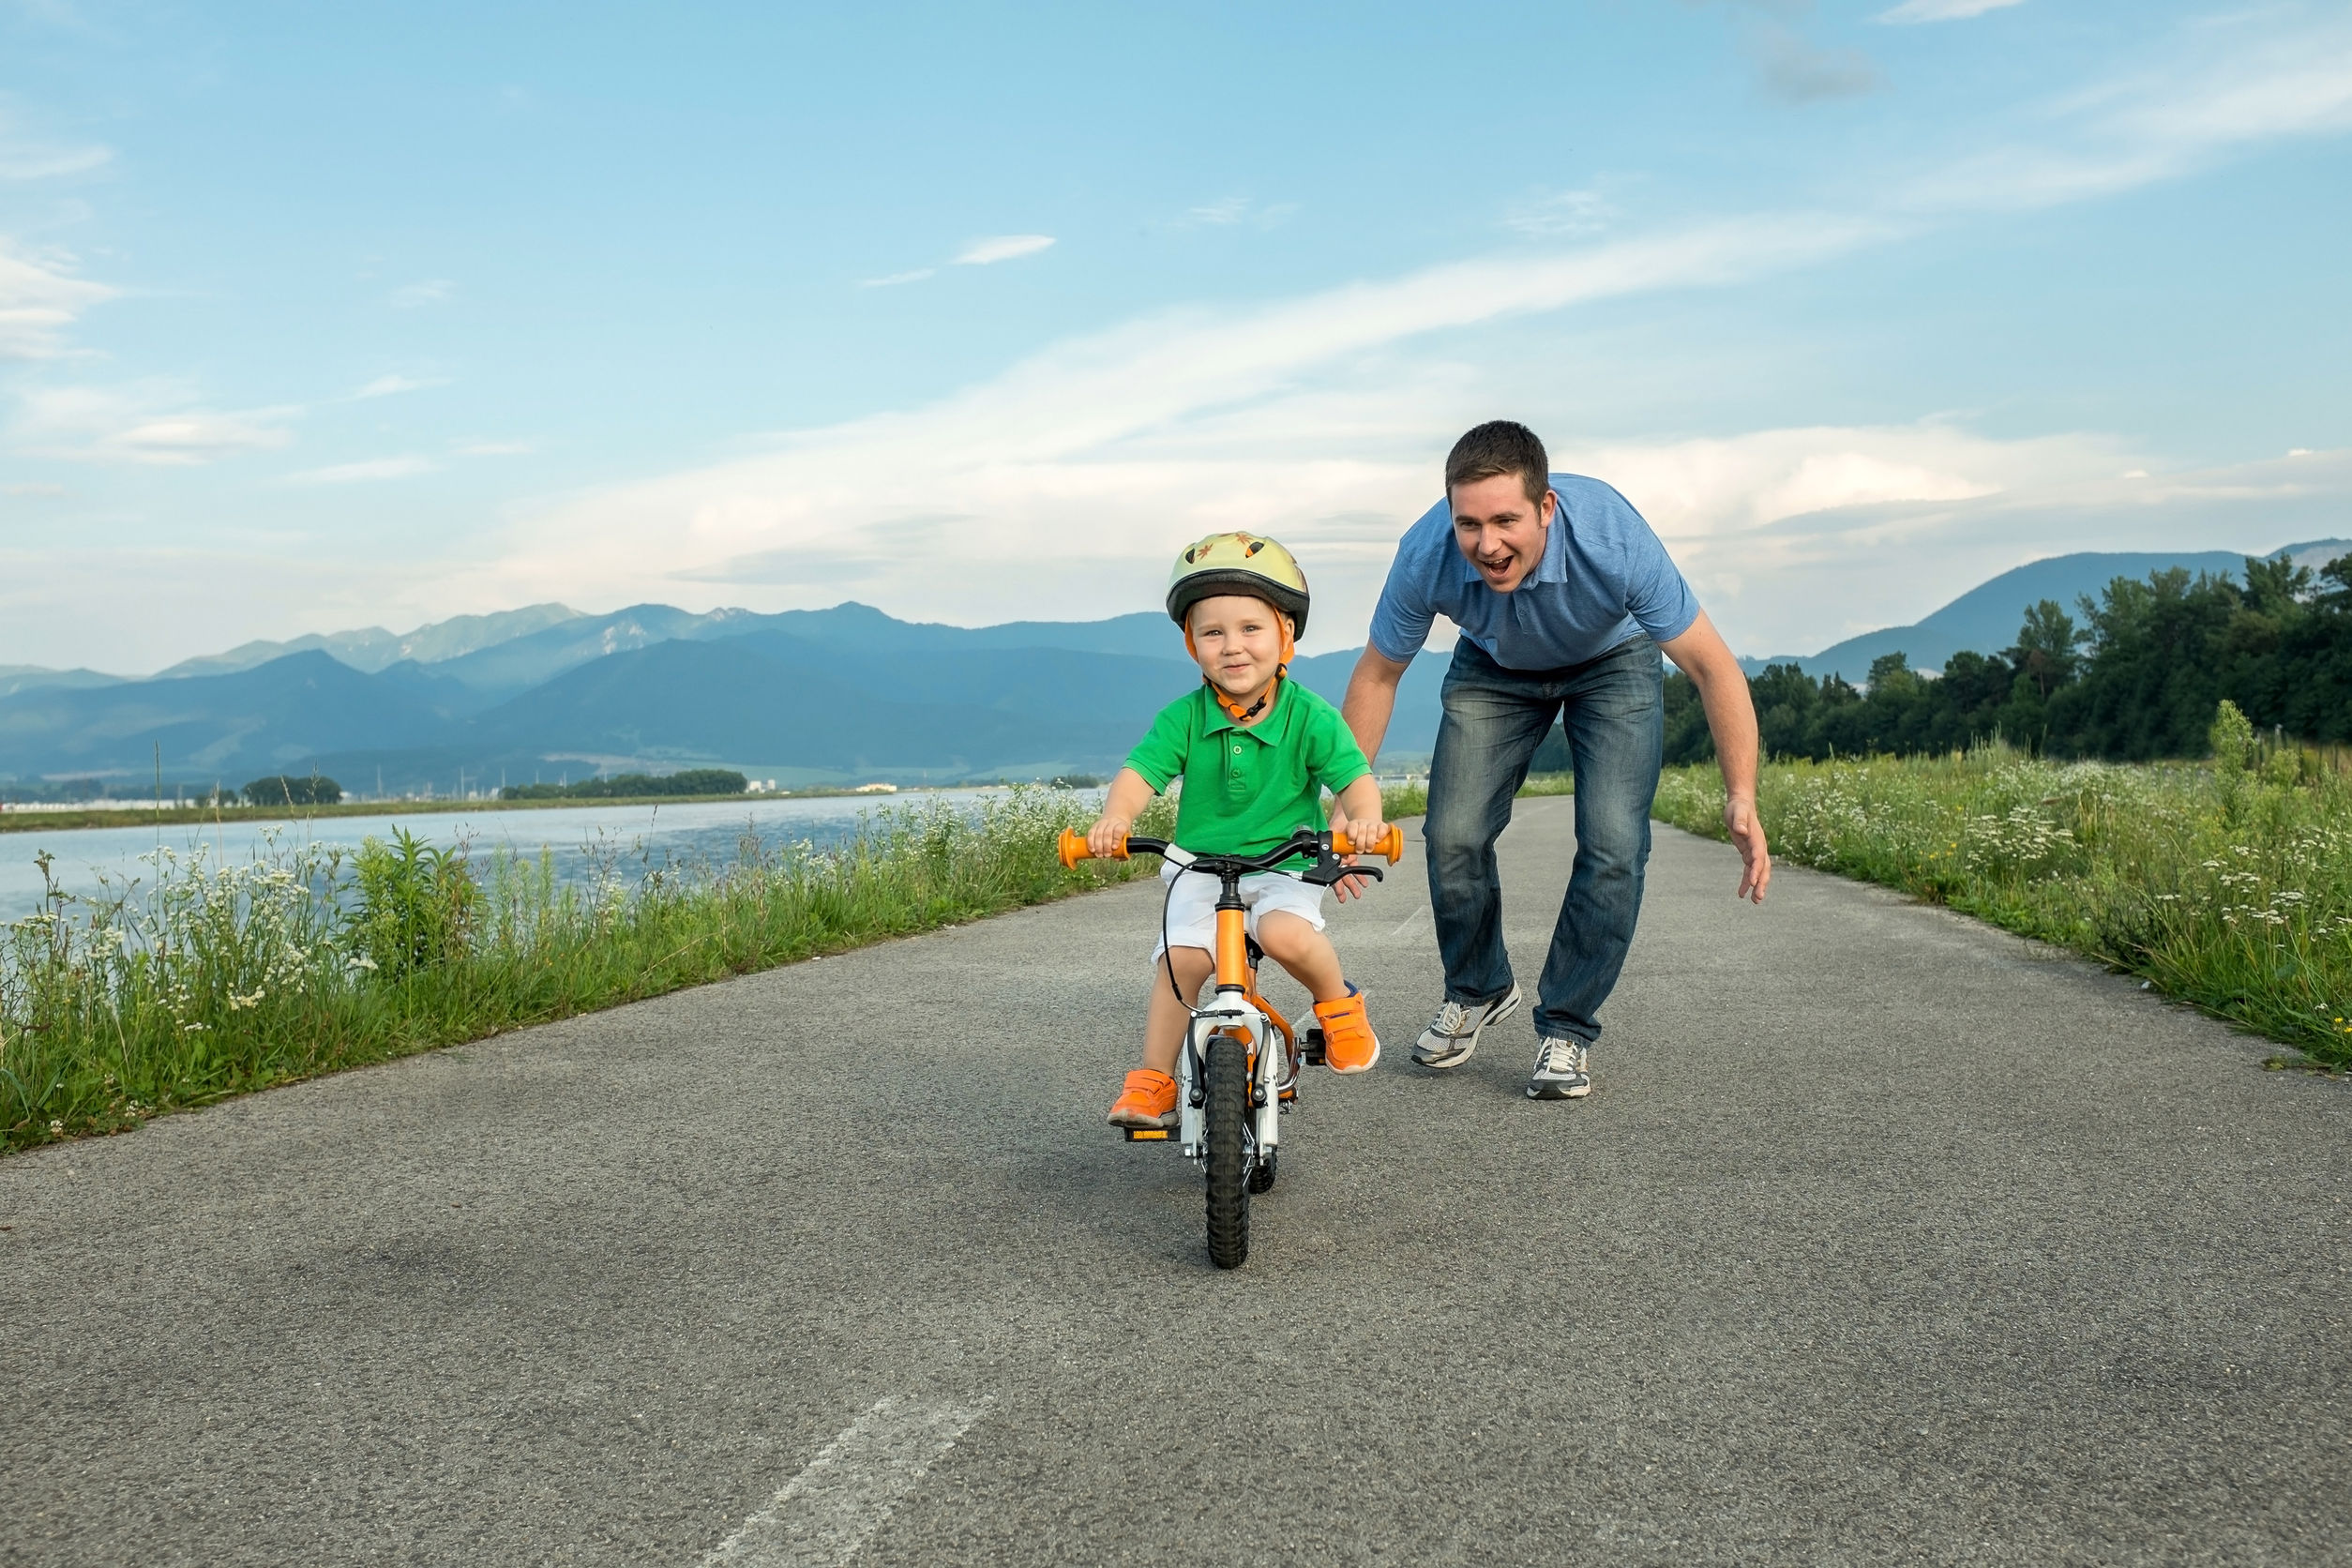 37279314 - happiness father and son on the bicycle outdoor